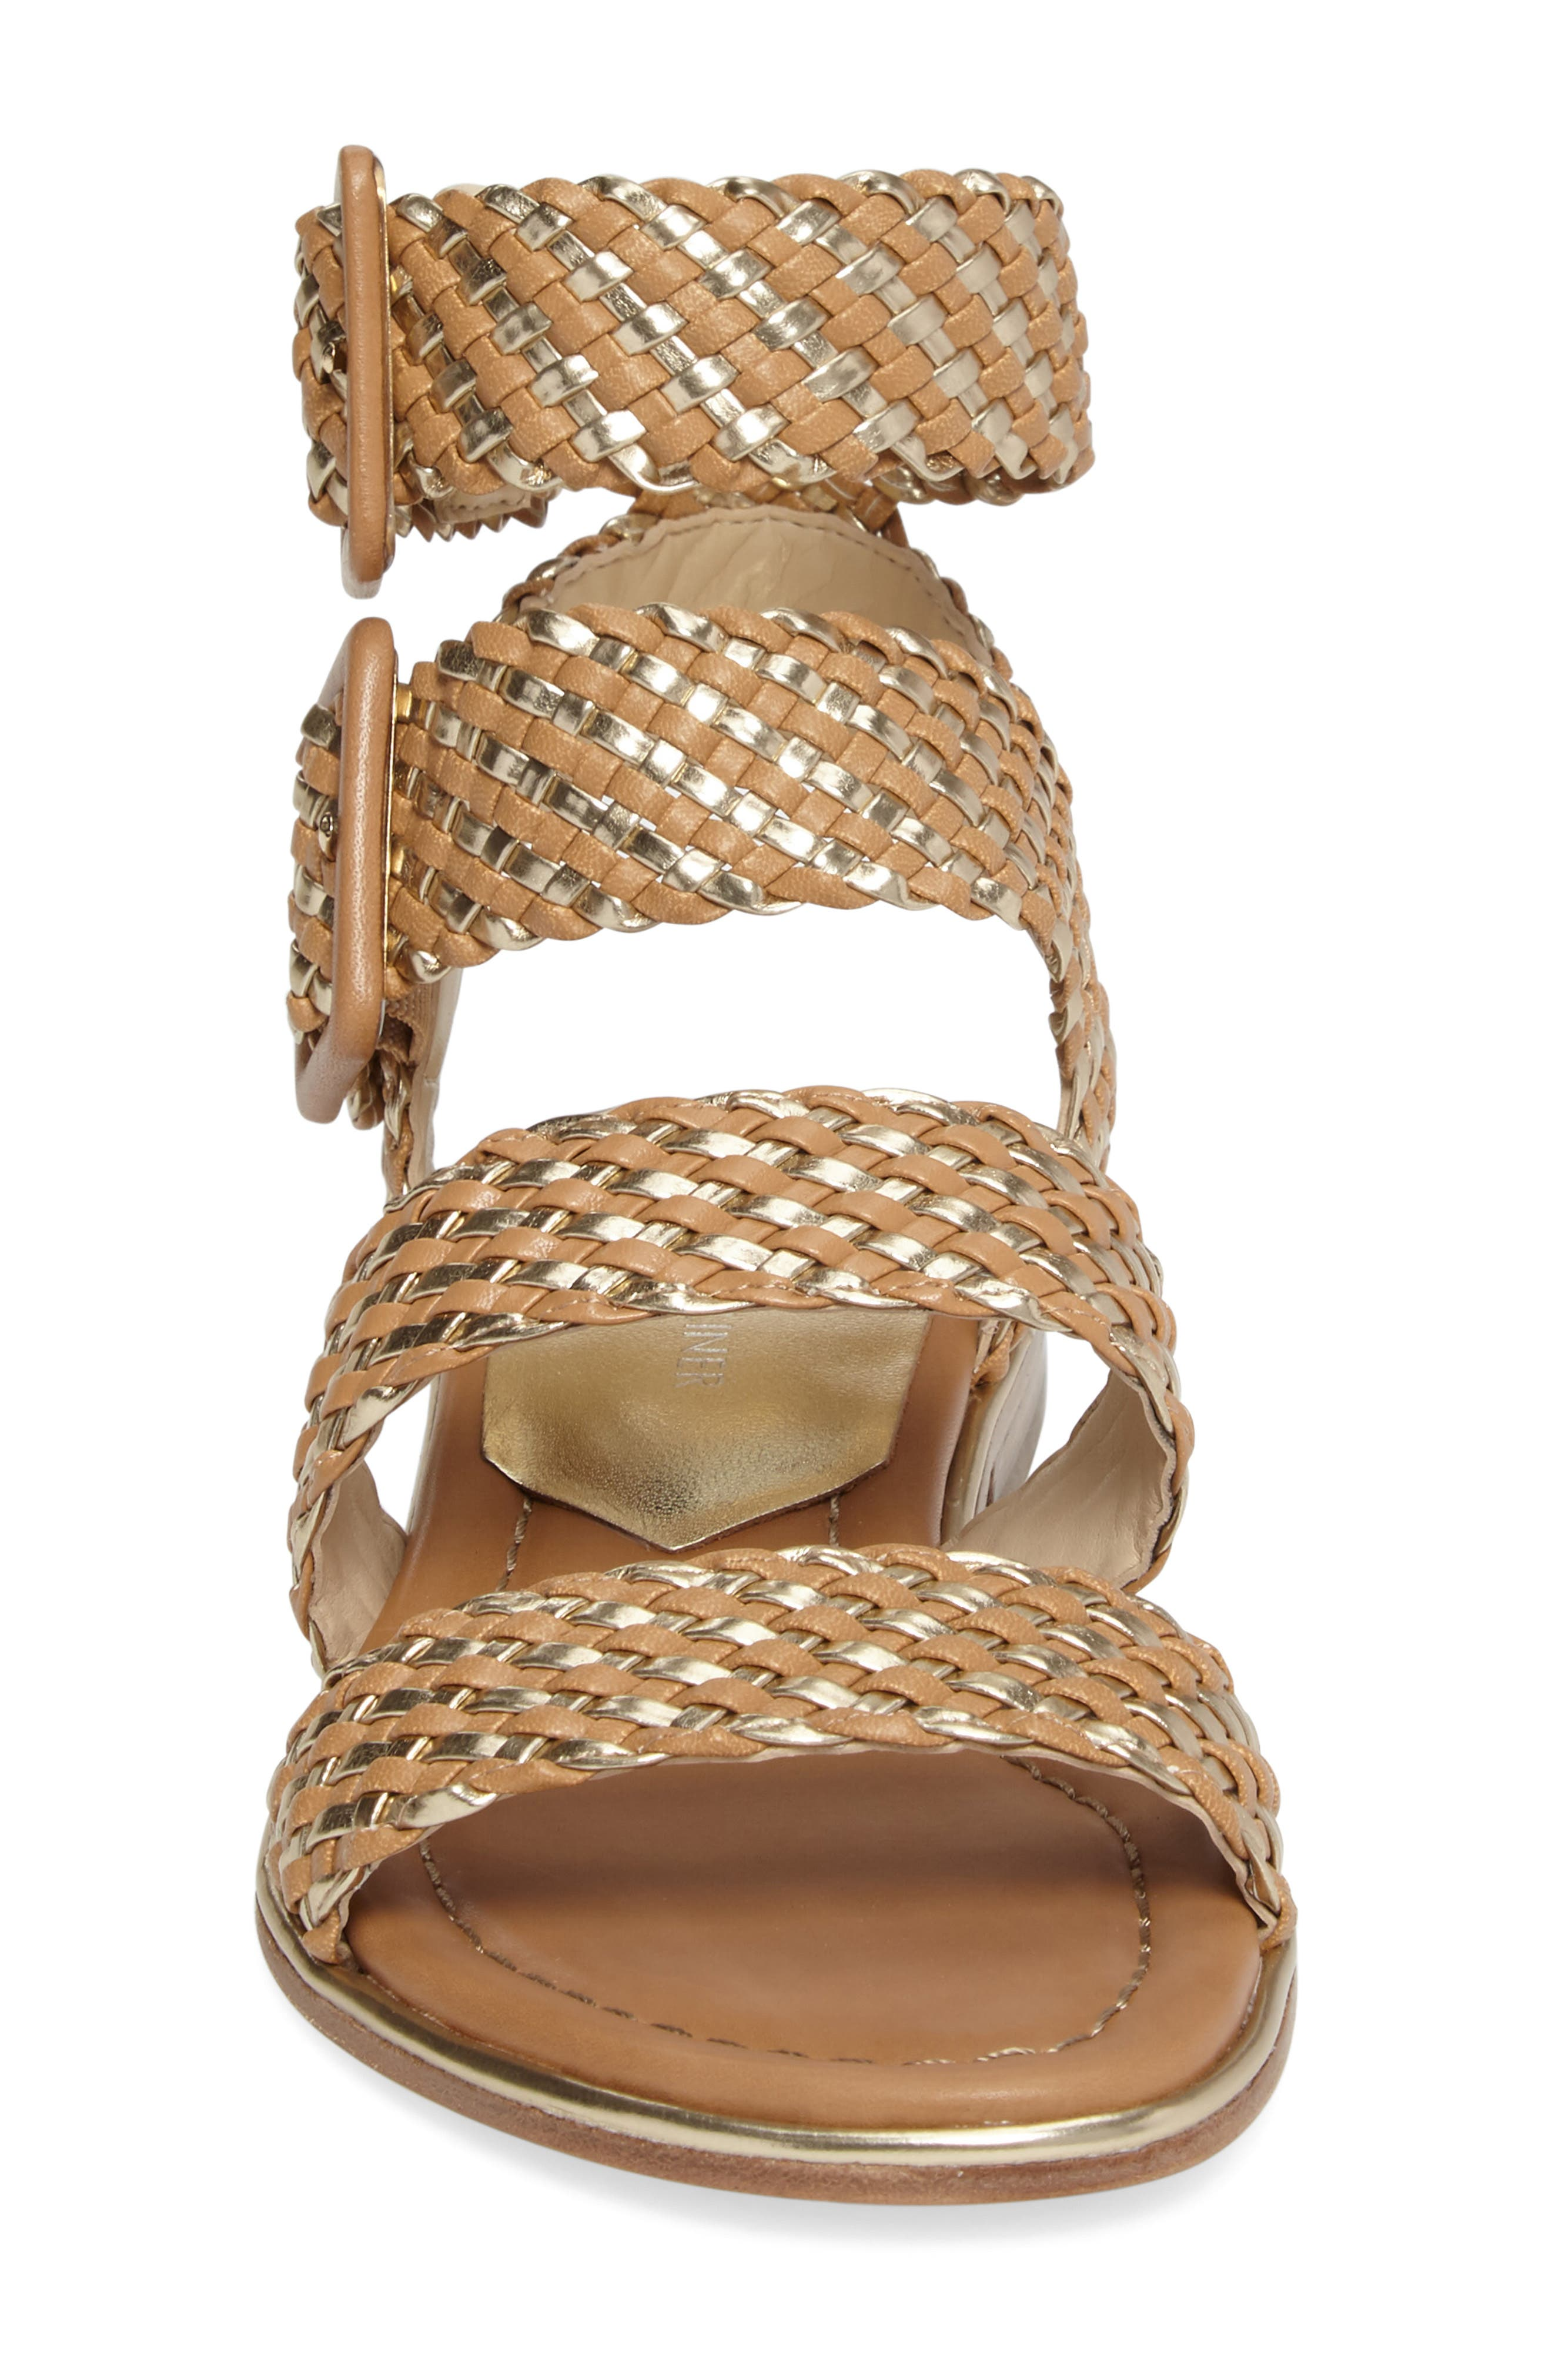 Donald J Pliner Lucia Braided Sandal,                             Alternate thumbnail 4, color,                             Sand/ Platino Faux Leather